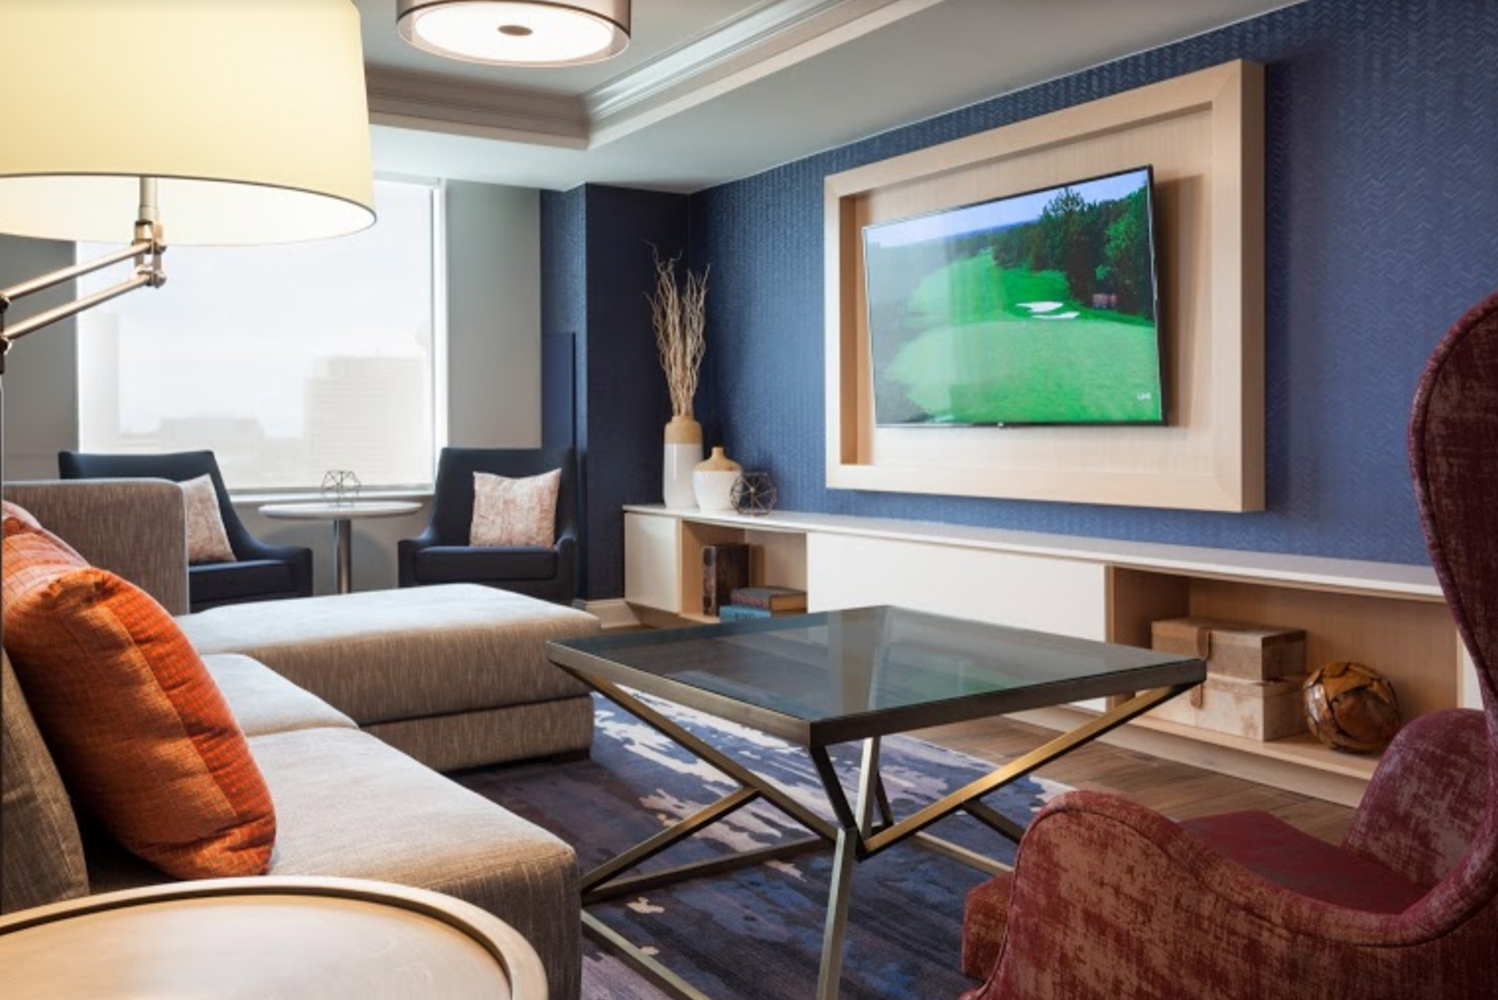 Designed by Looney & Associates, accommodations feature new furnishings and nautical accents of blue, white and gray, reflecting the property's waterfront setting.